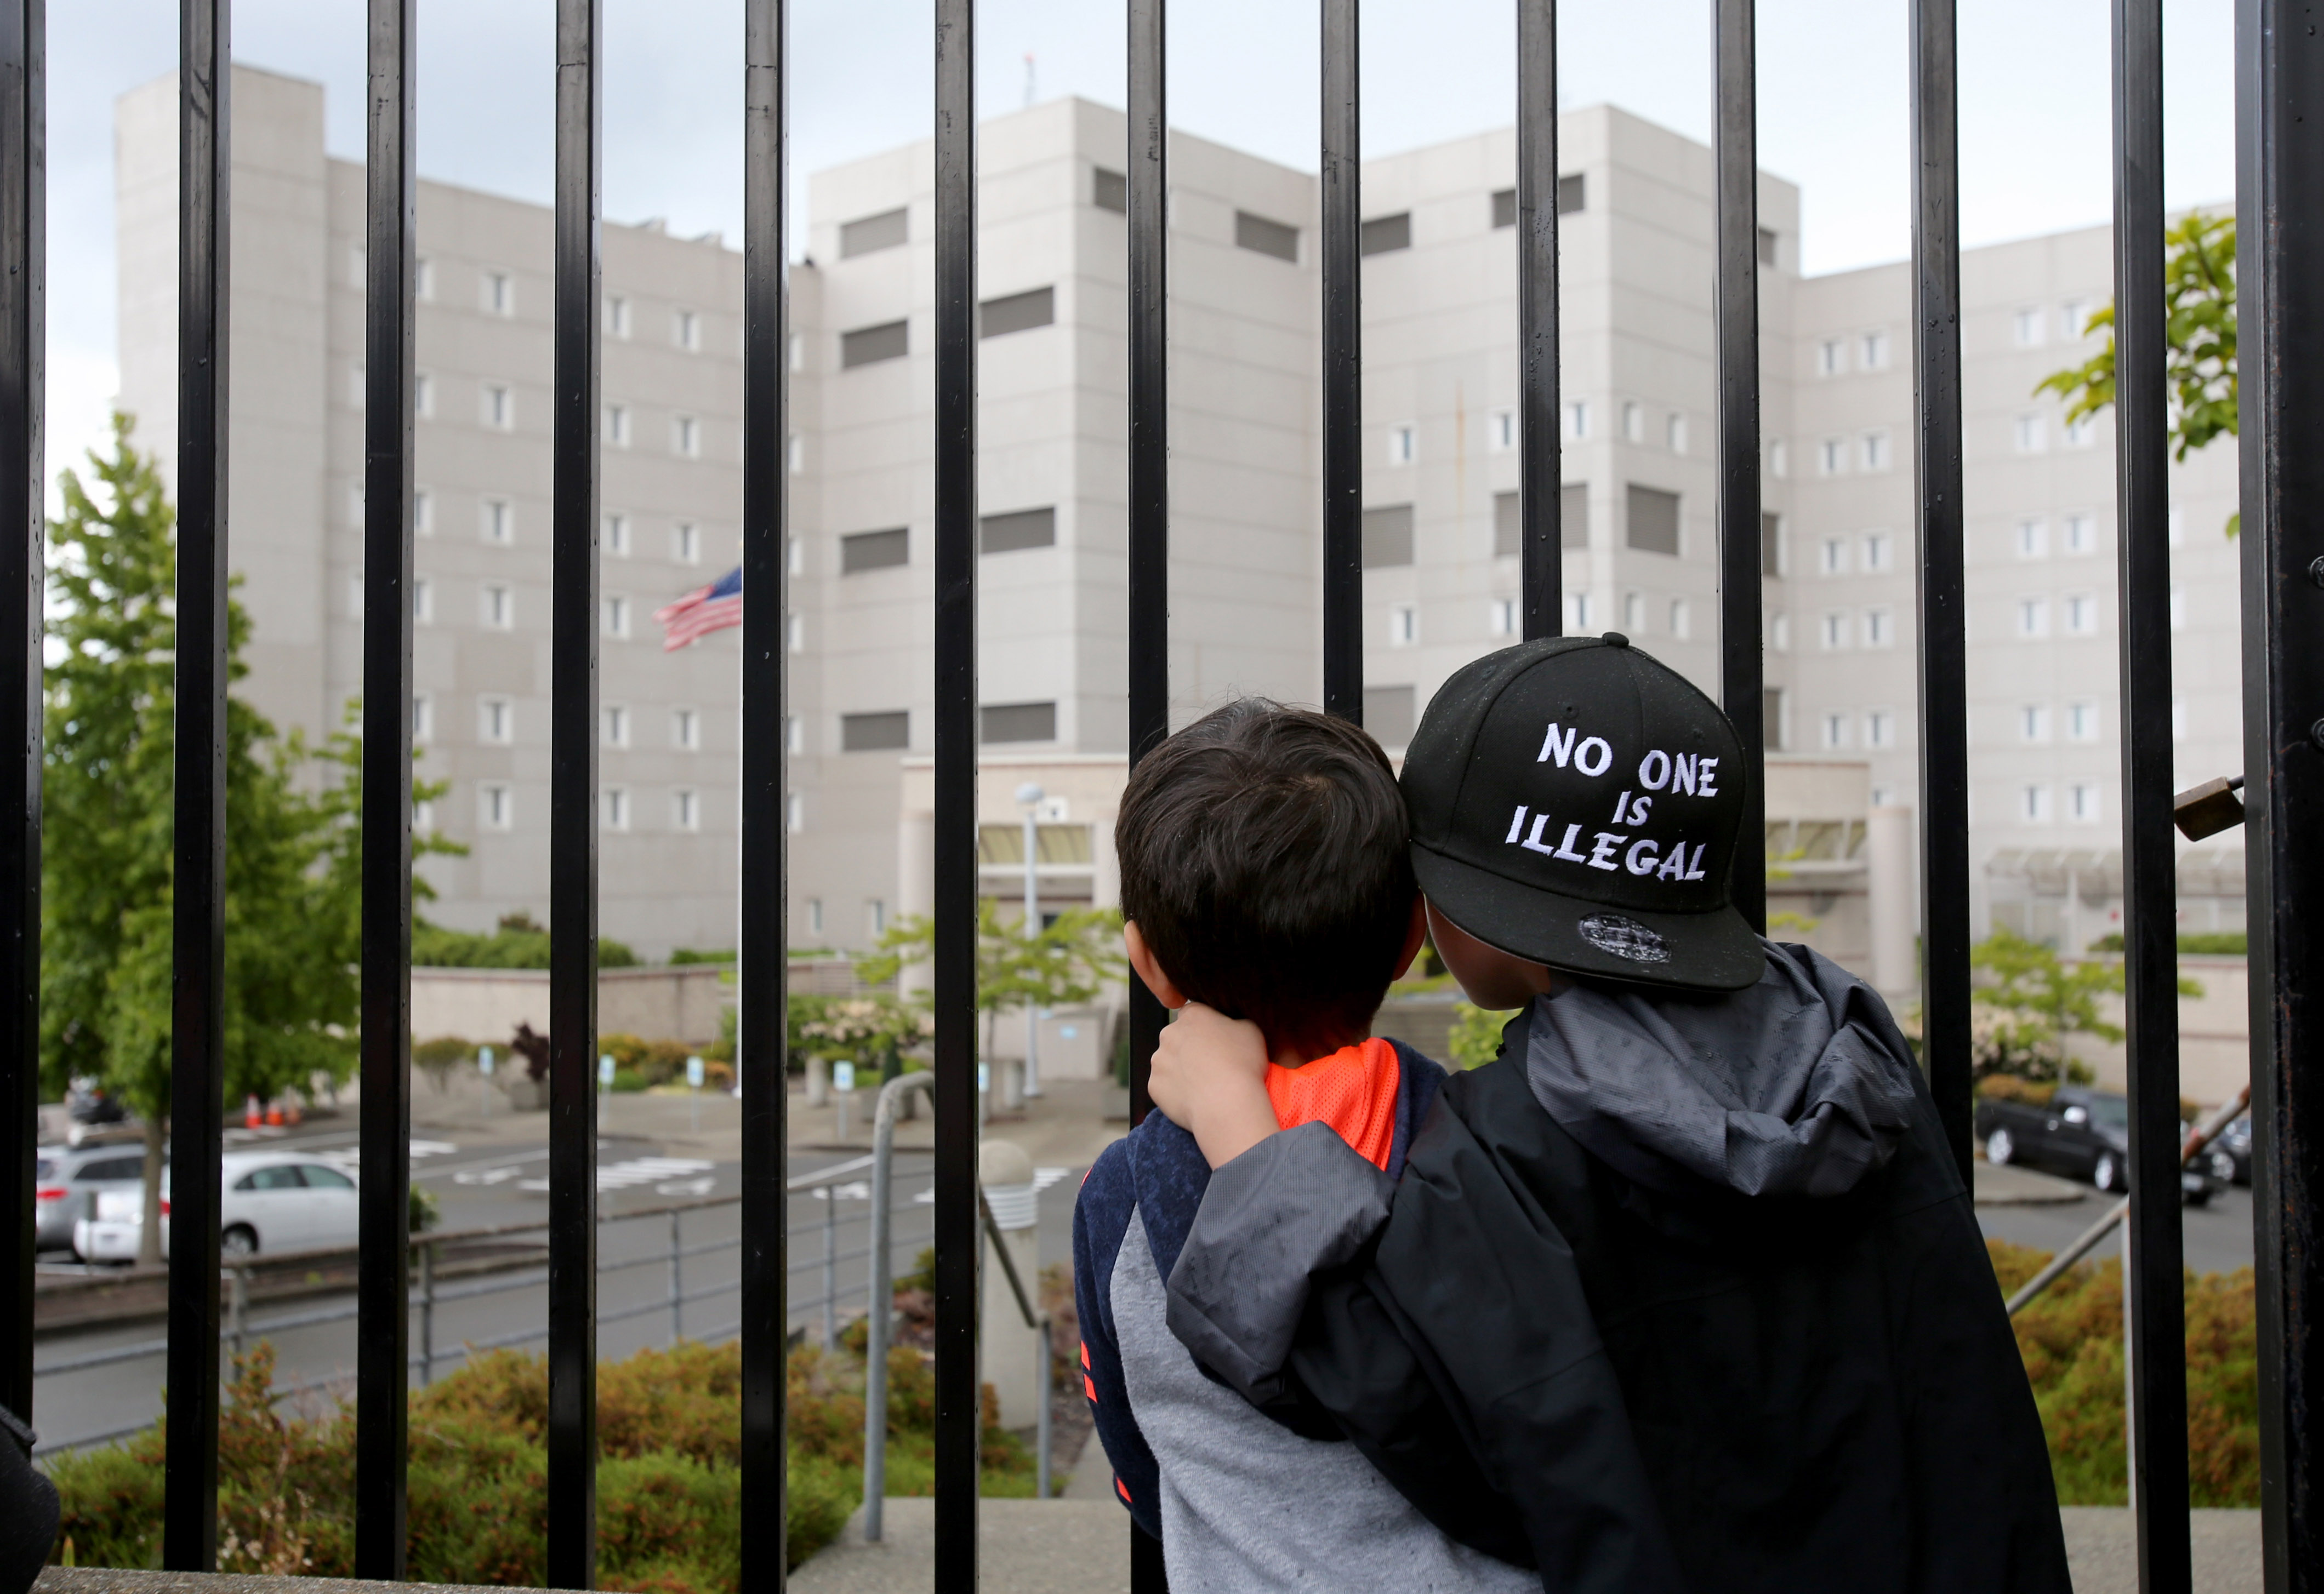 Asylum news: Attorney General William Barr gives ICE more power to detain asylum seekers